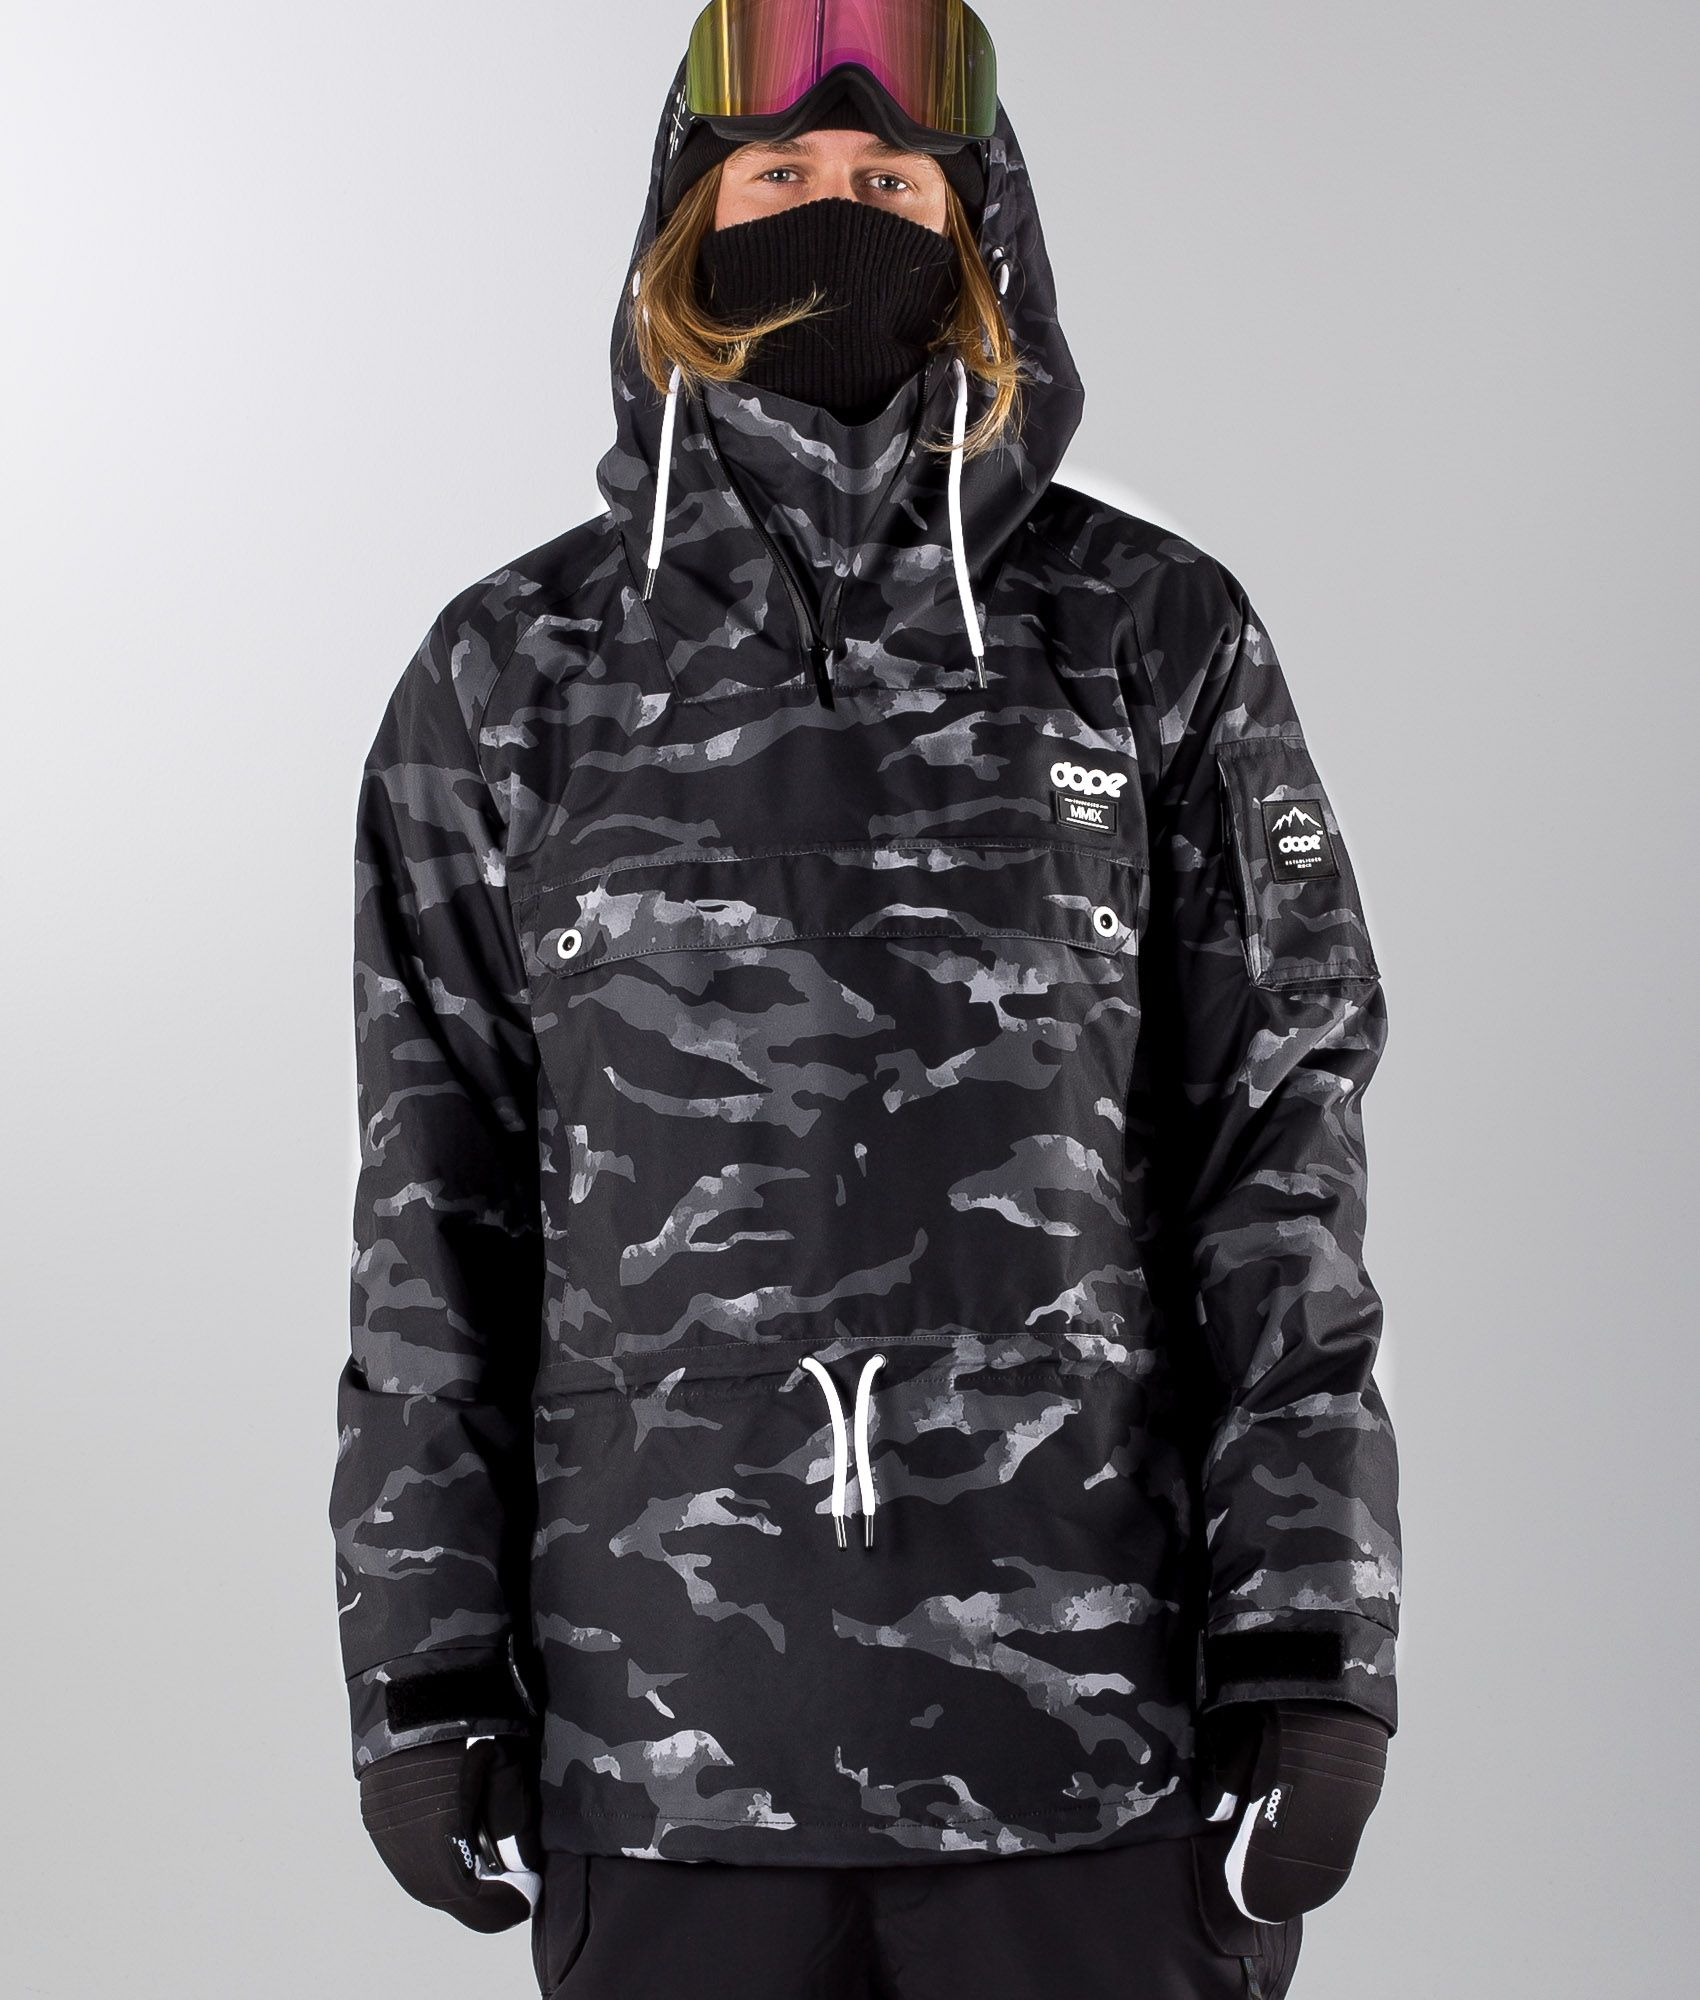 Buy Annok Snowboard Jacket from Dope at Ridestore.com - Always free  shipping 20f1ecf8f7